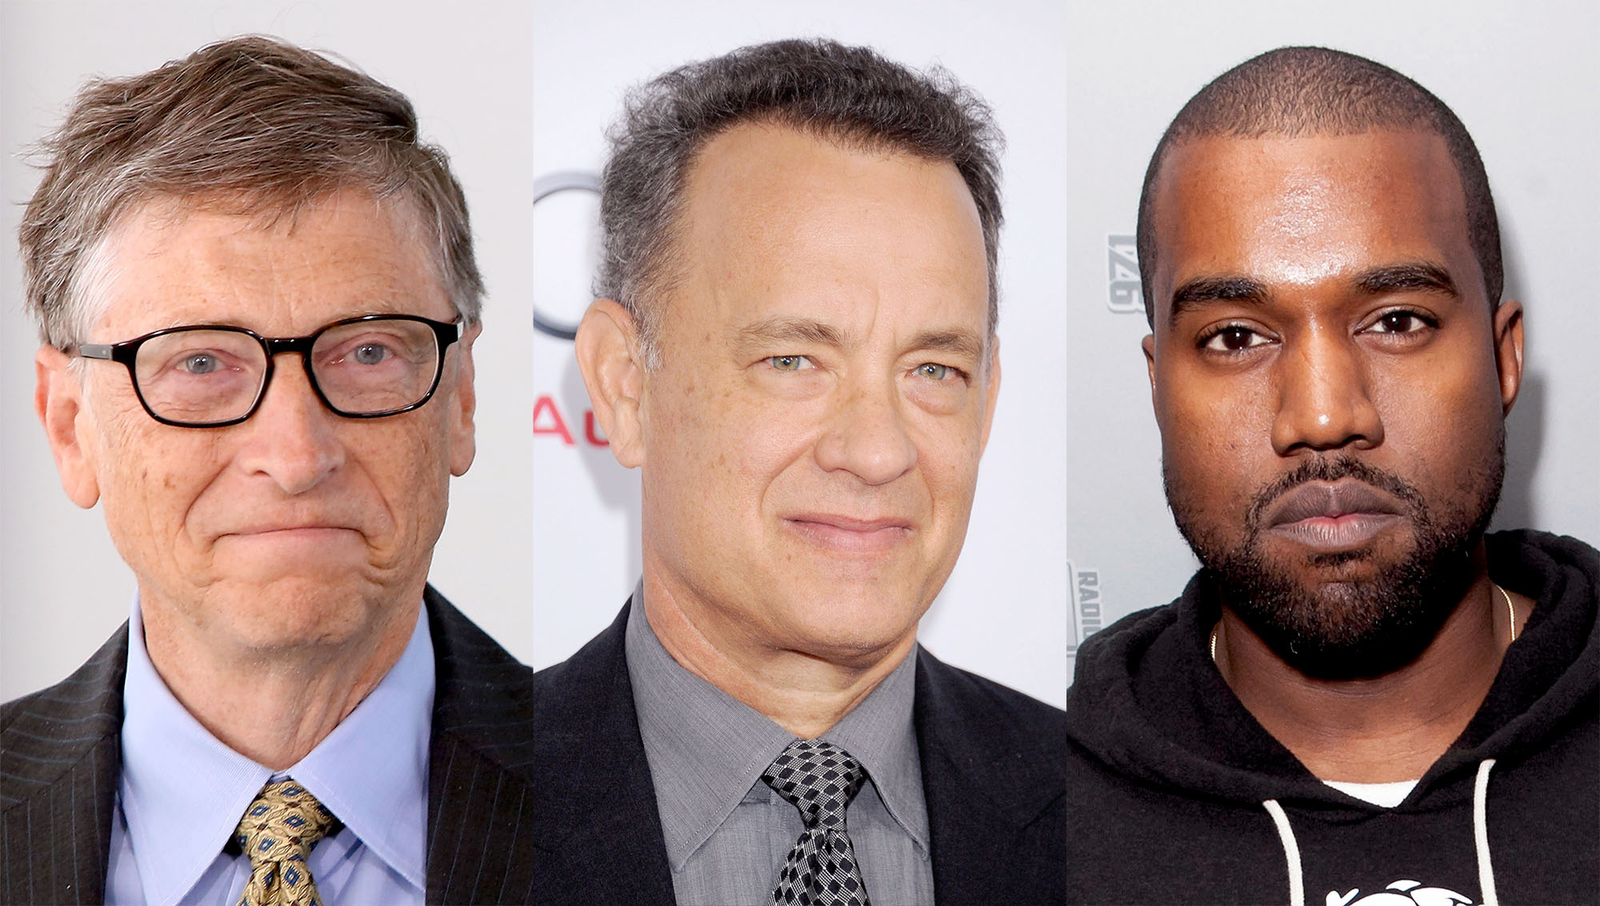 Report: Kanye West, Bill Gates, Tom Hanks All Currently Reading, Enjoying This Article